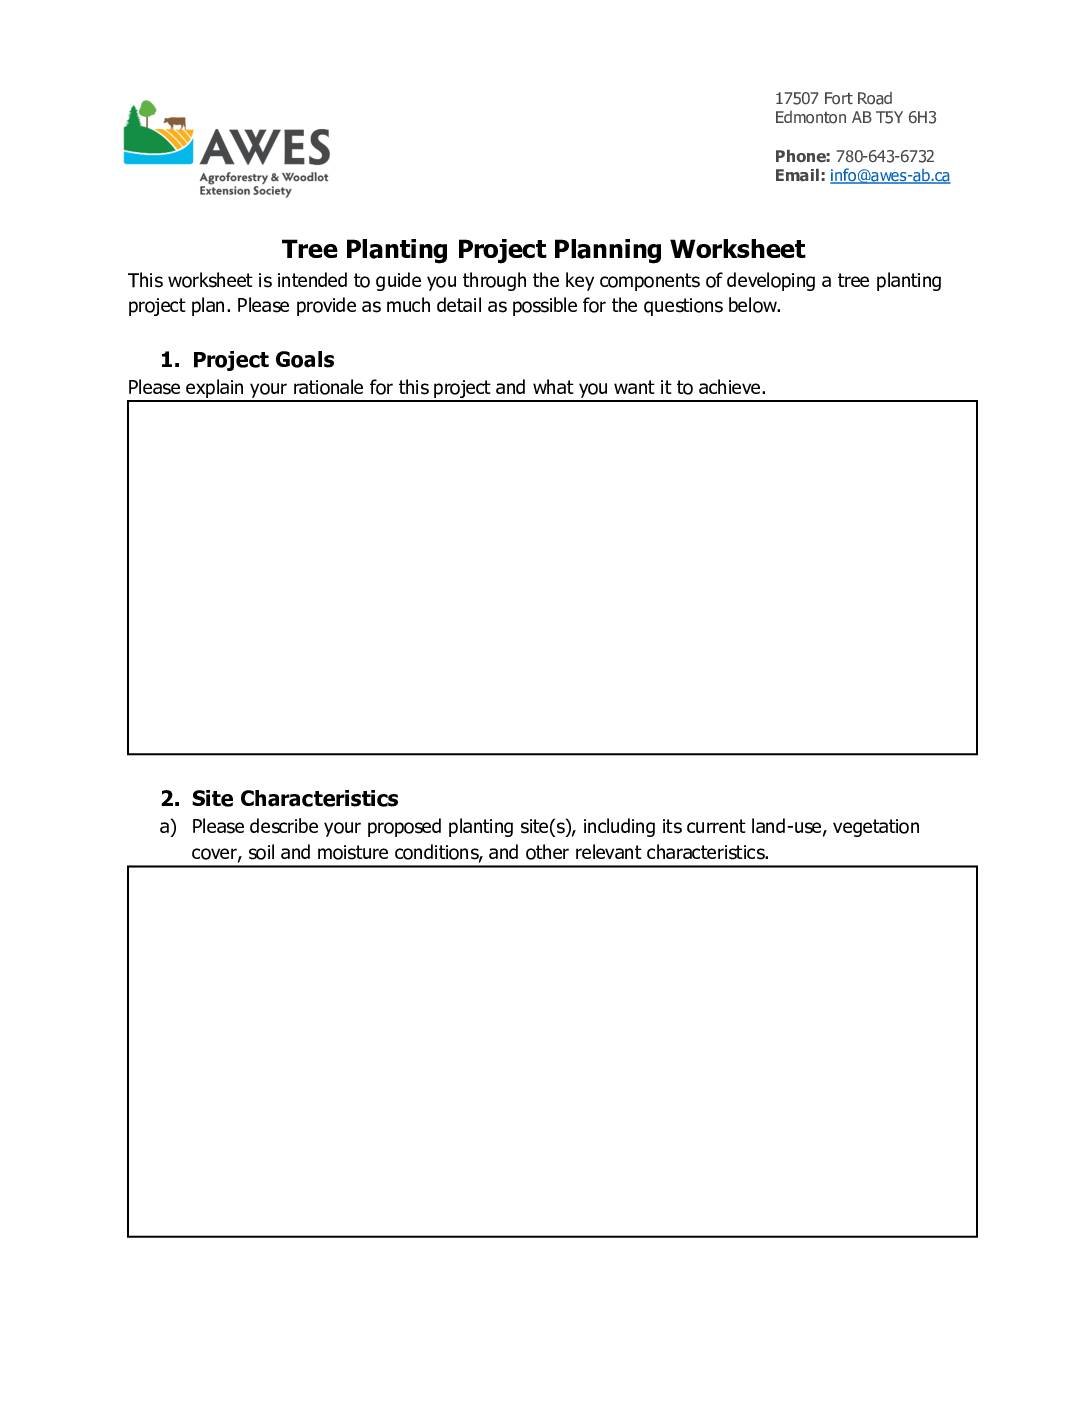 AWES Planting Project Planning Worksheet